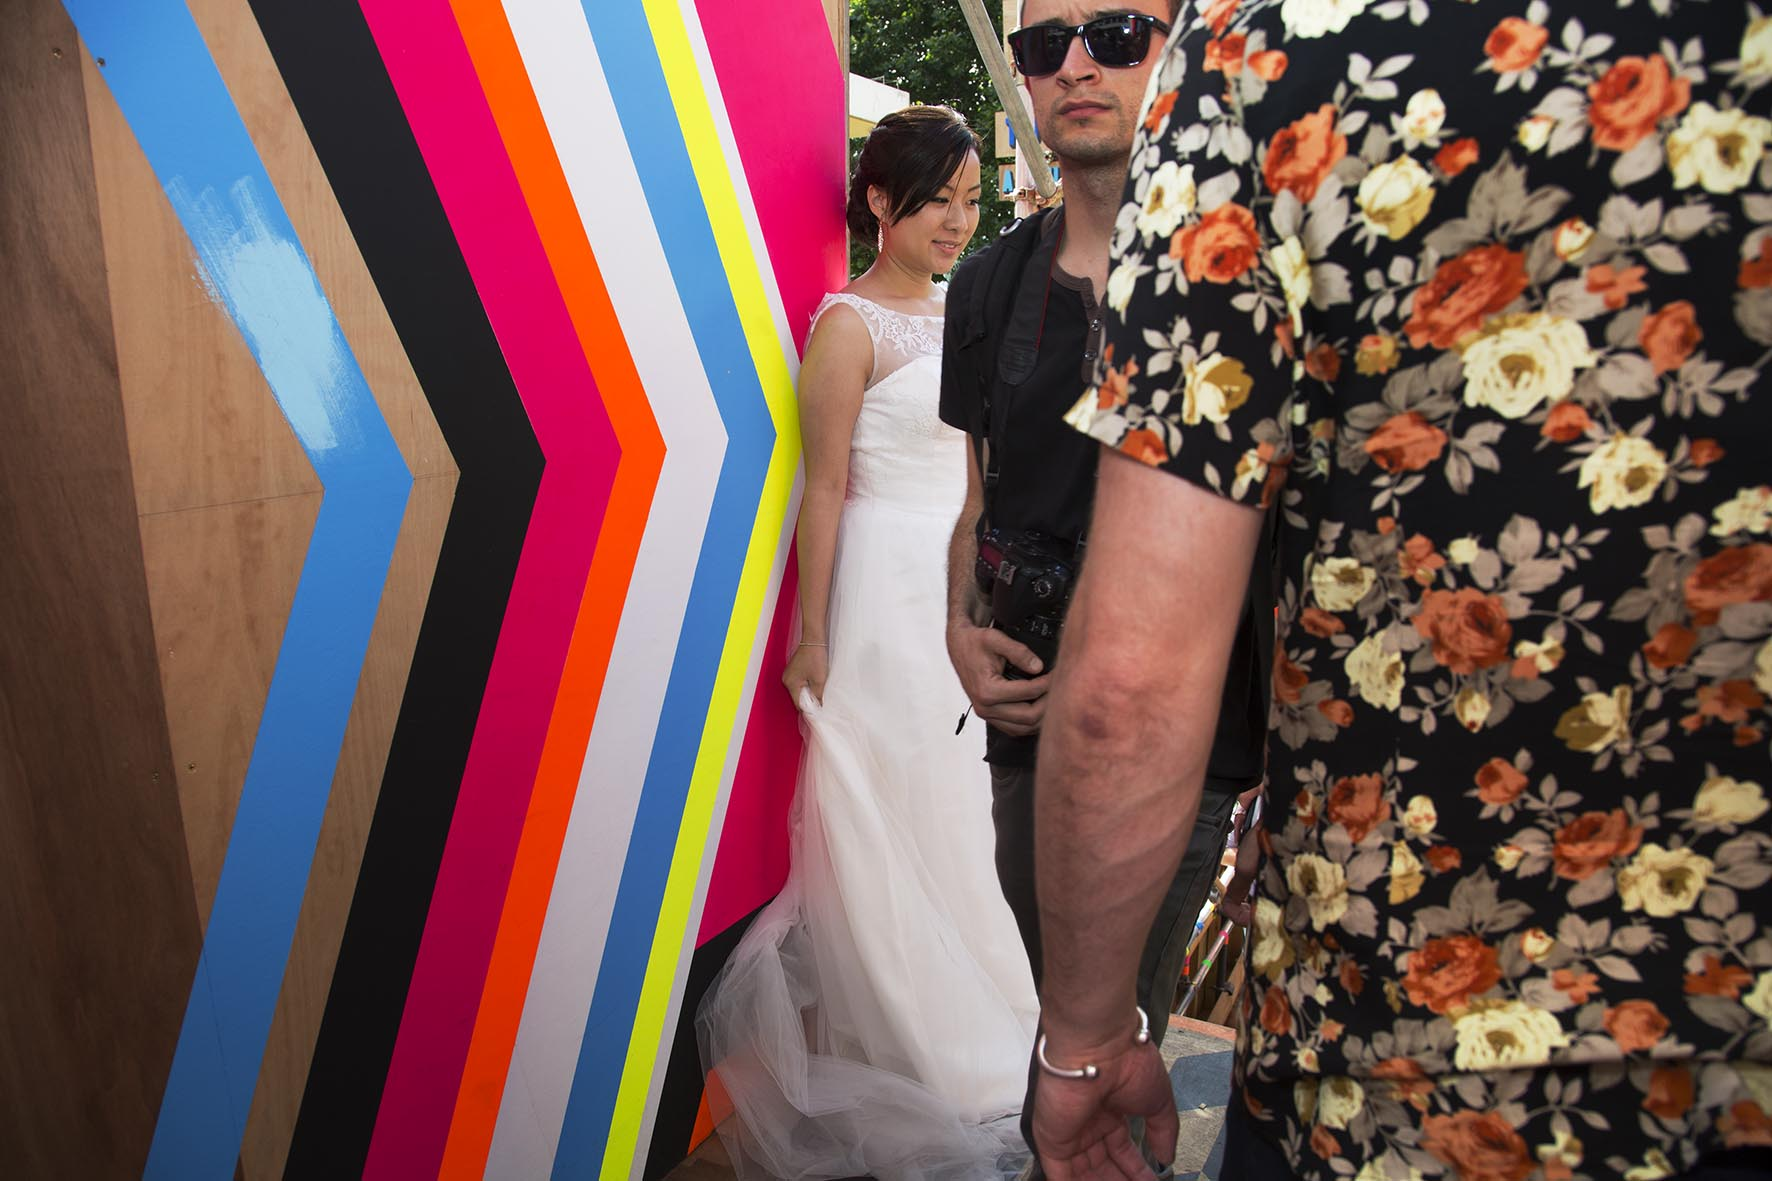 20140713_south bank wedding couple_A.jpg